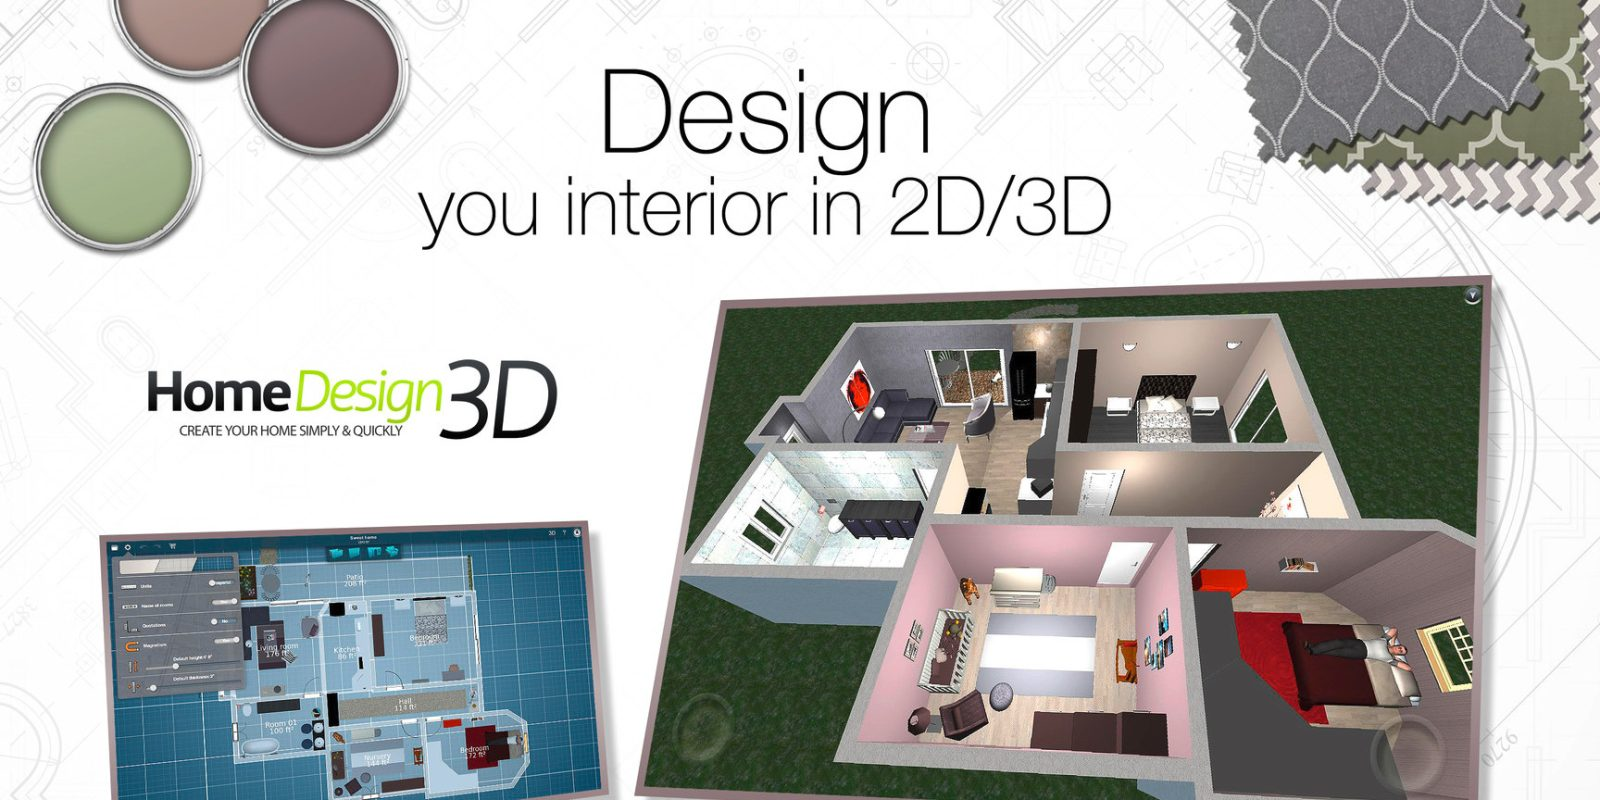 Home designer 3d for ios mac goes free for the first time gold version 1 reg up to 10